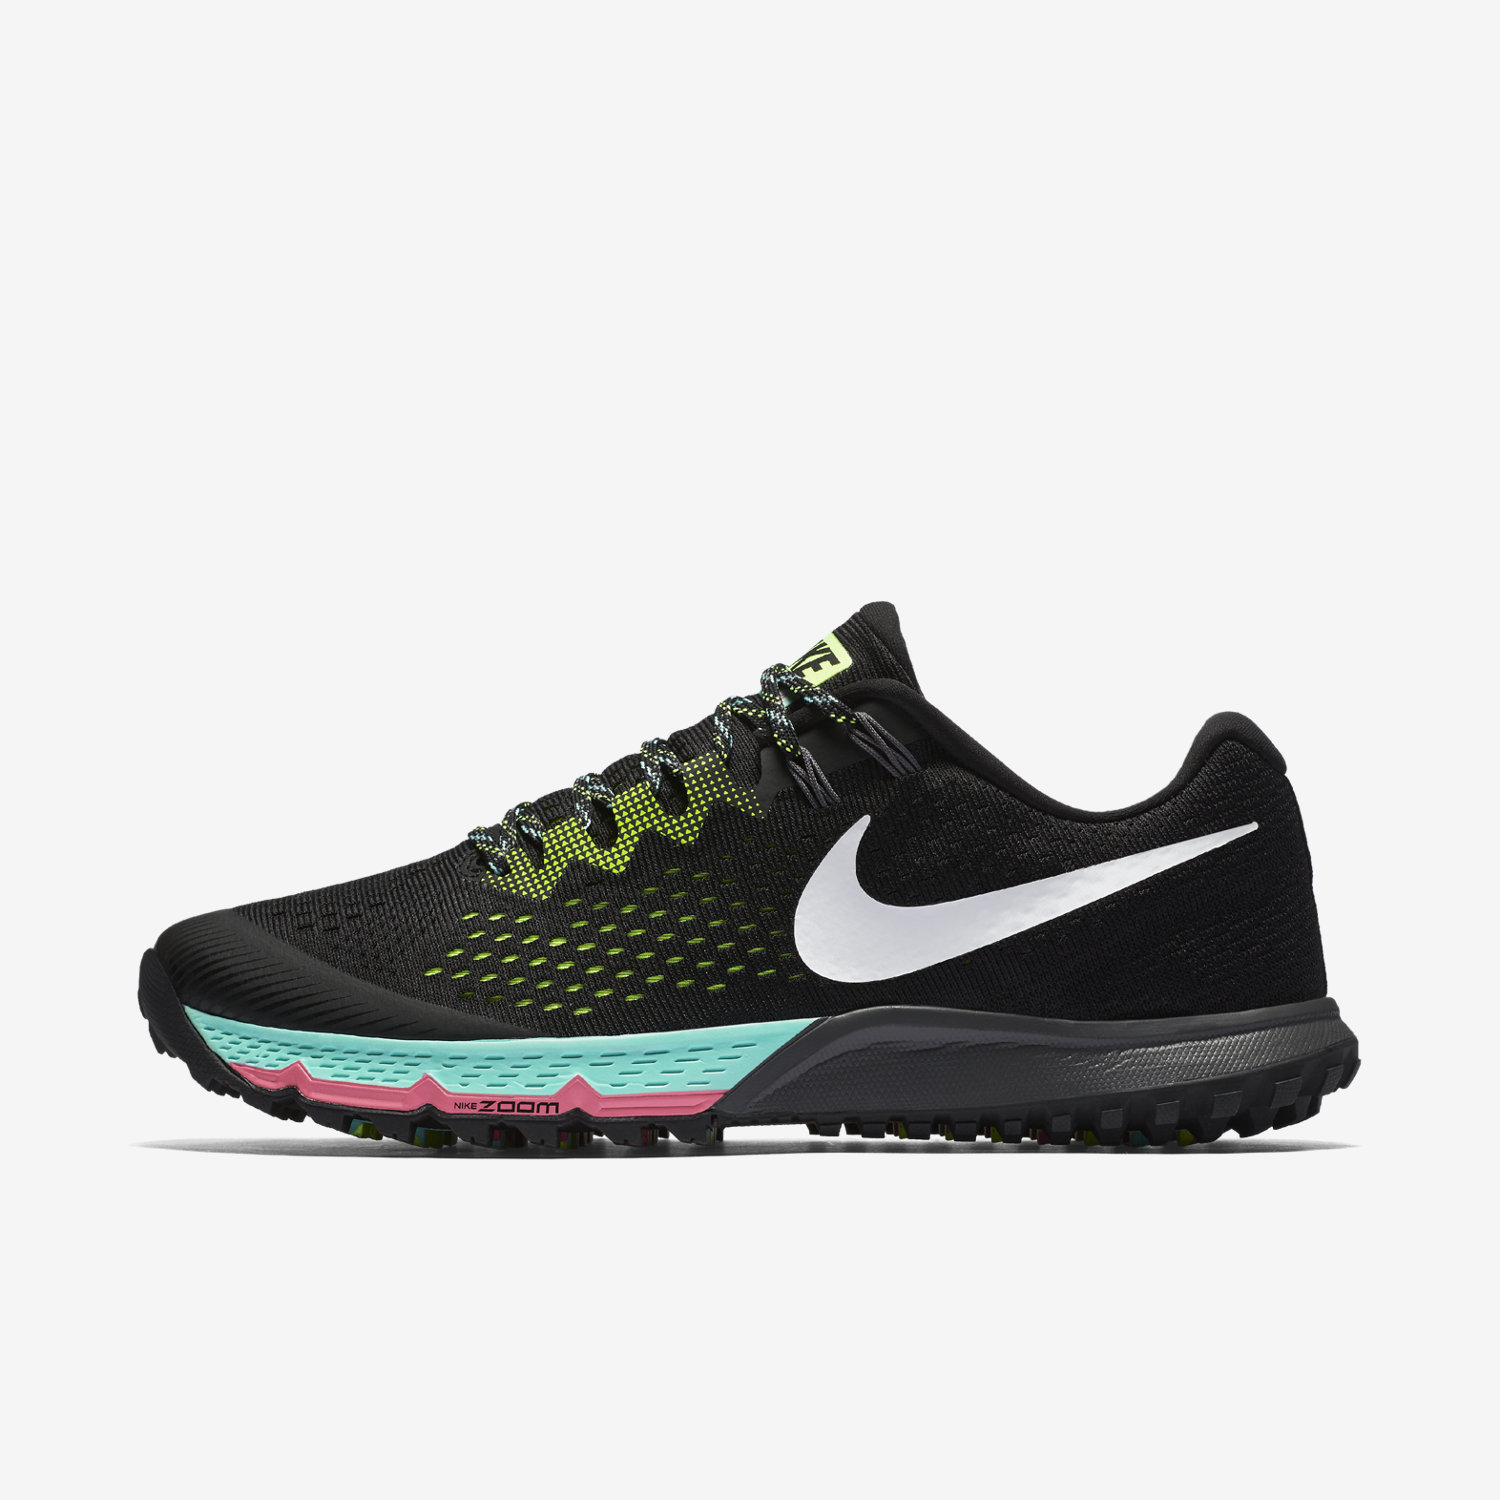 Nike sports shoes nike running shoes mens sale dubai IVRENEA